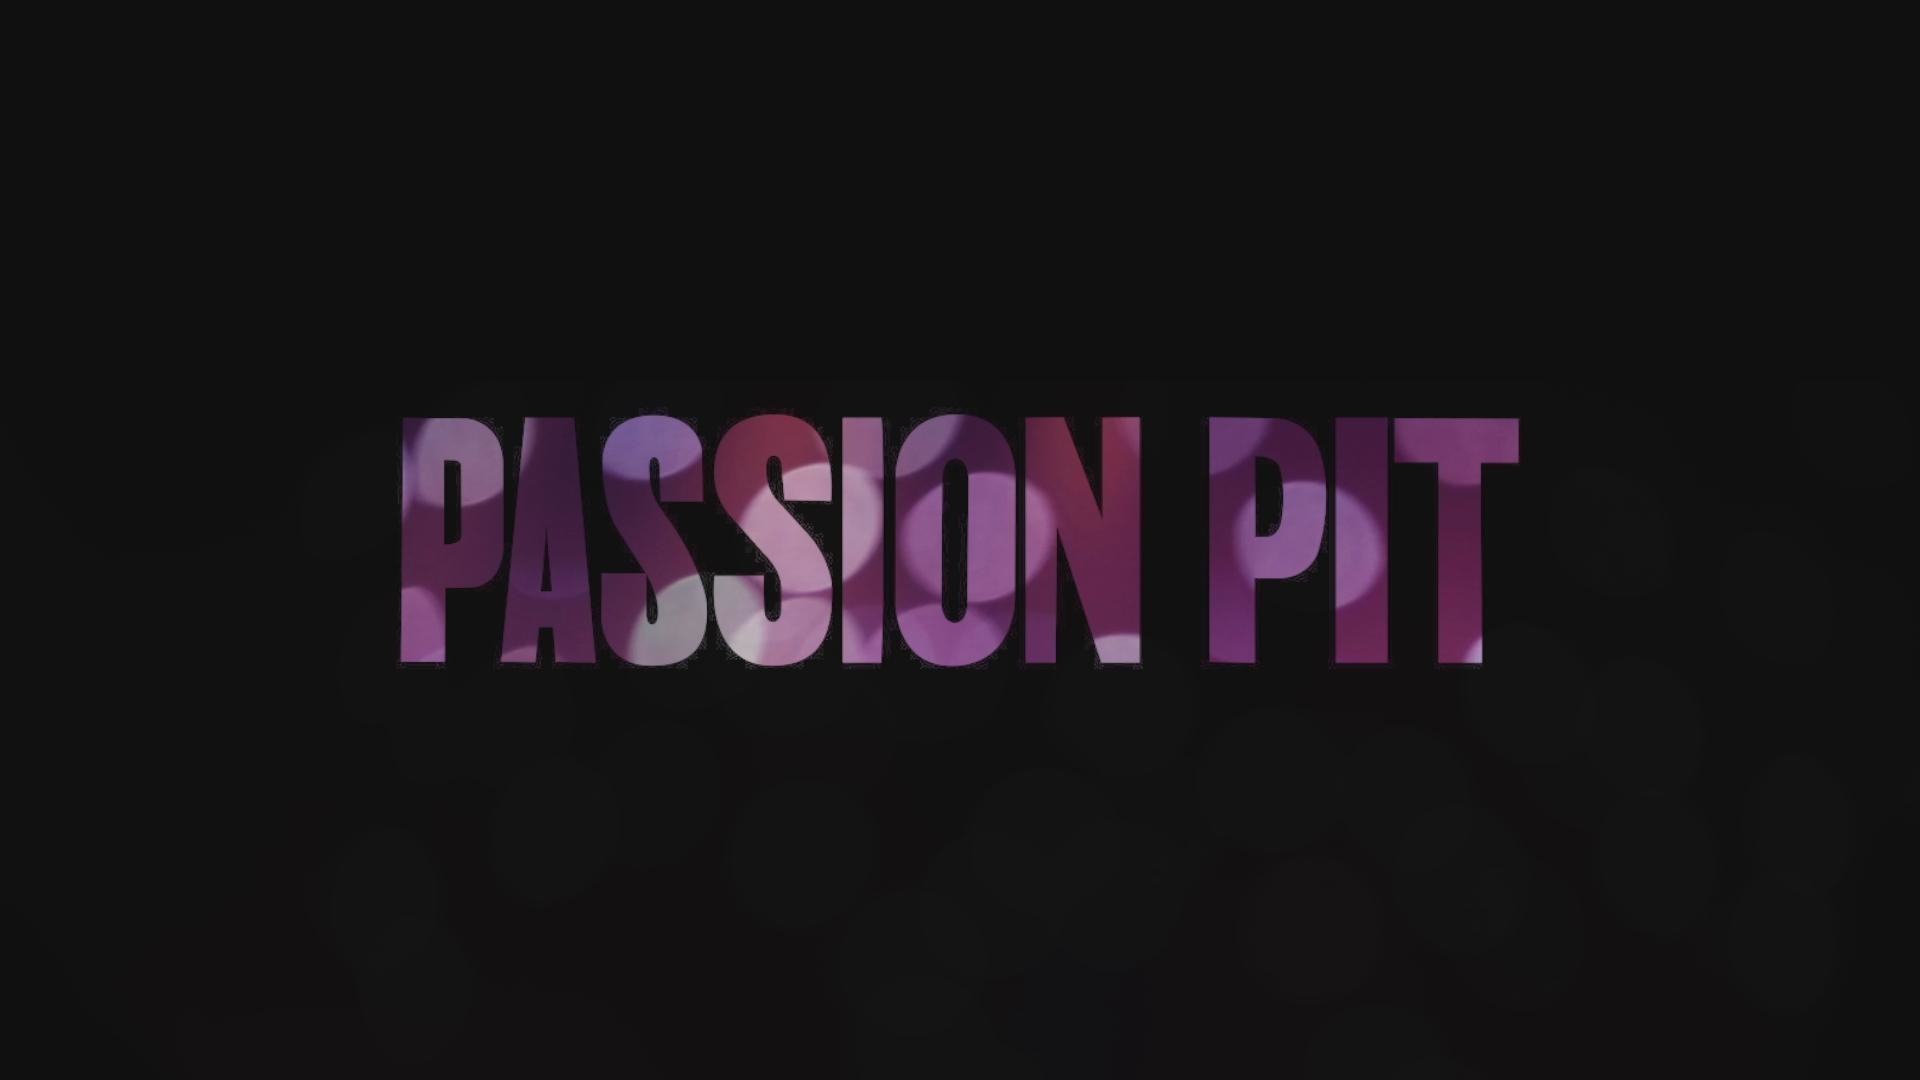 Passion Pit – Passion Pit Give Fans A Free Ride Home Video